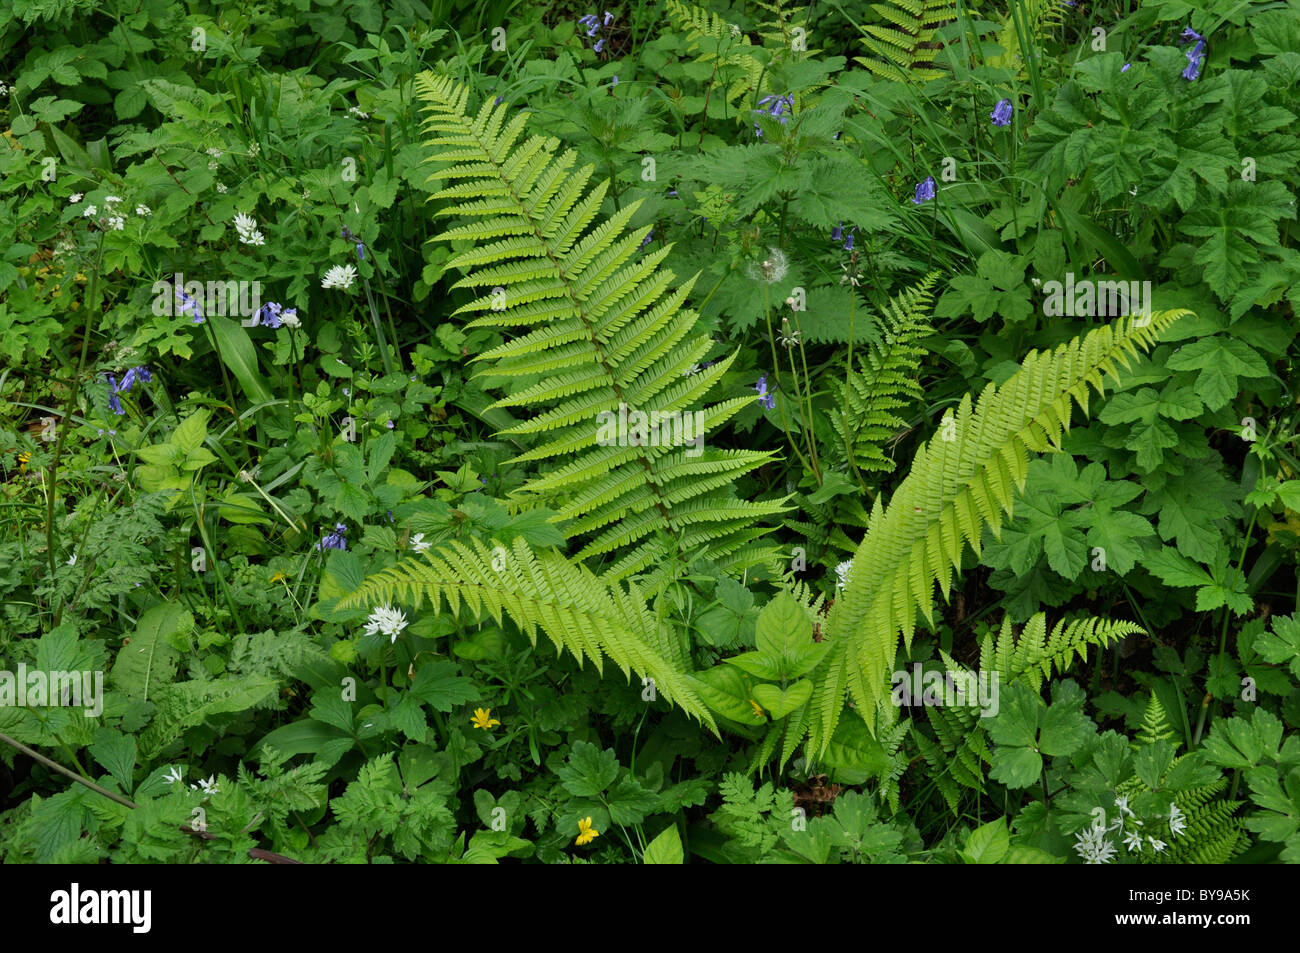 Ferns in the Aber Mawr area of Pembrokeshire, Wales, UK - Stock Image